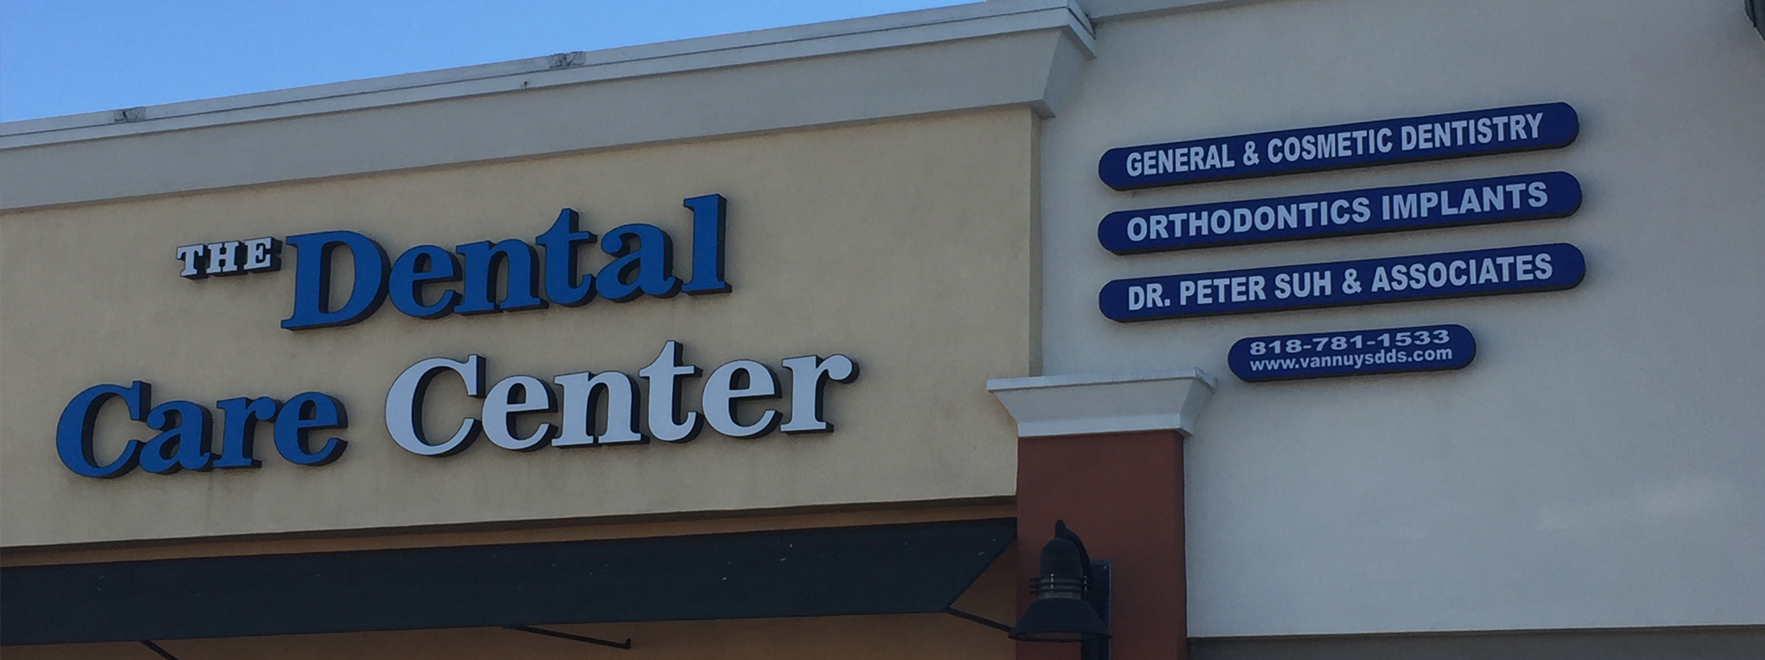 The Dental Care Center